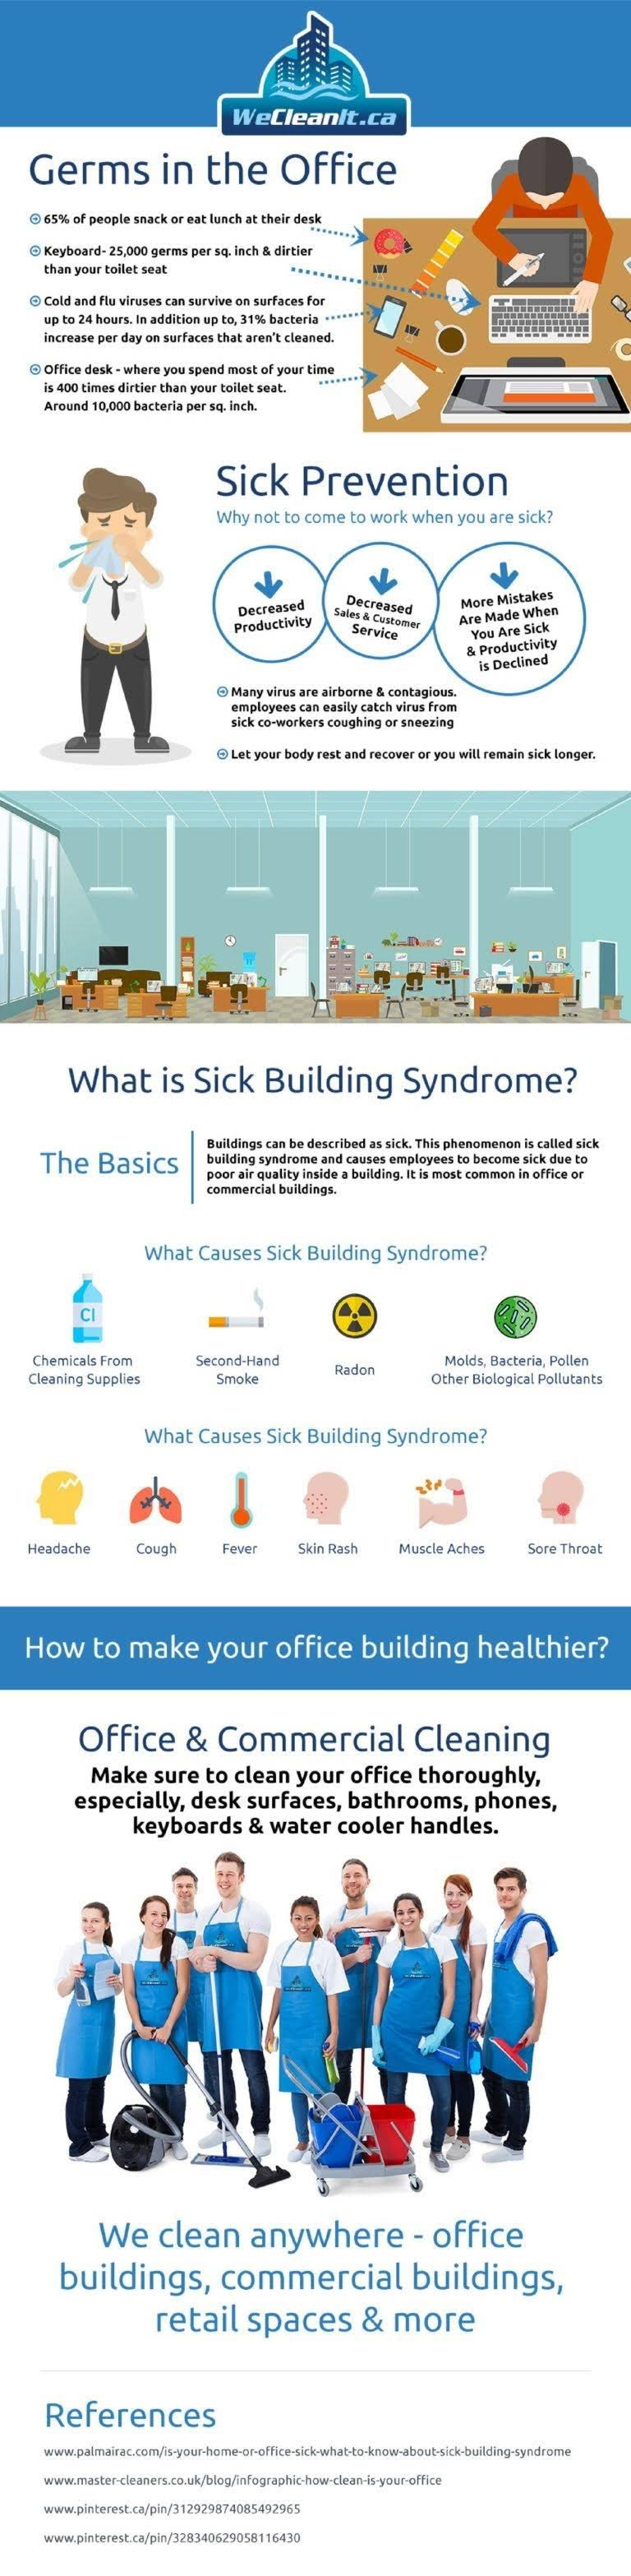 Less Employee Sick Days With Office Cleaning #infographic